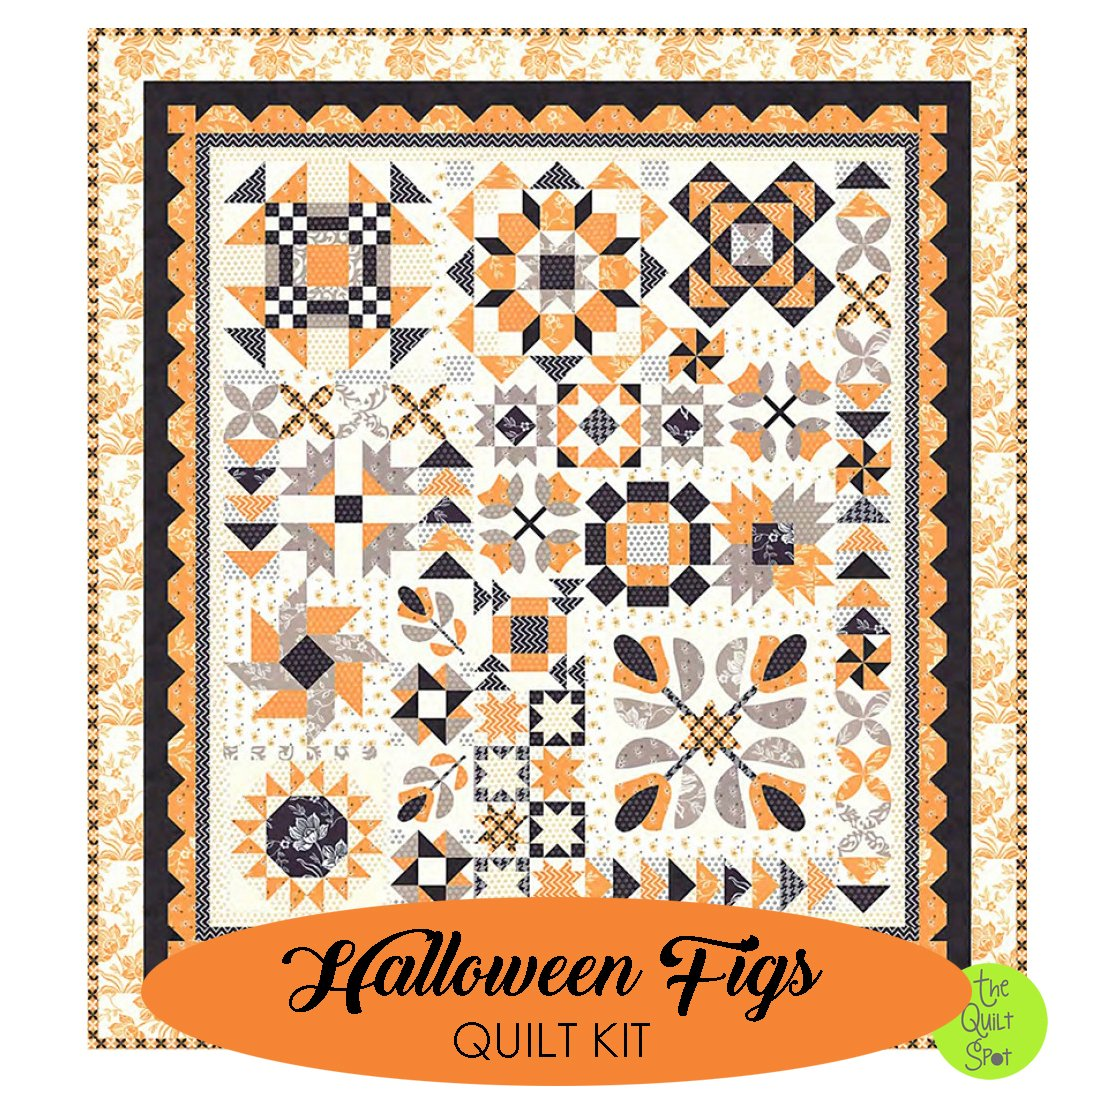 Halloween Figs Complete Quilt Top Kit